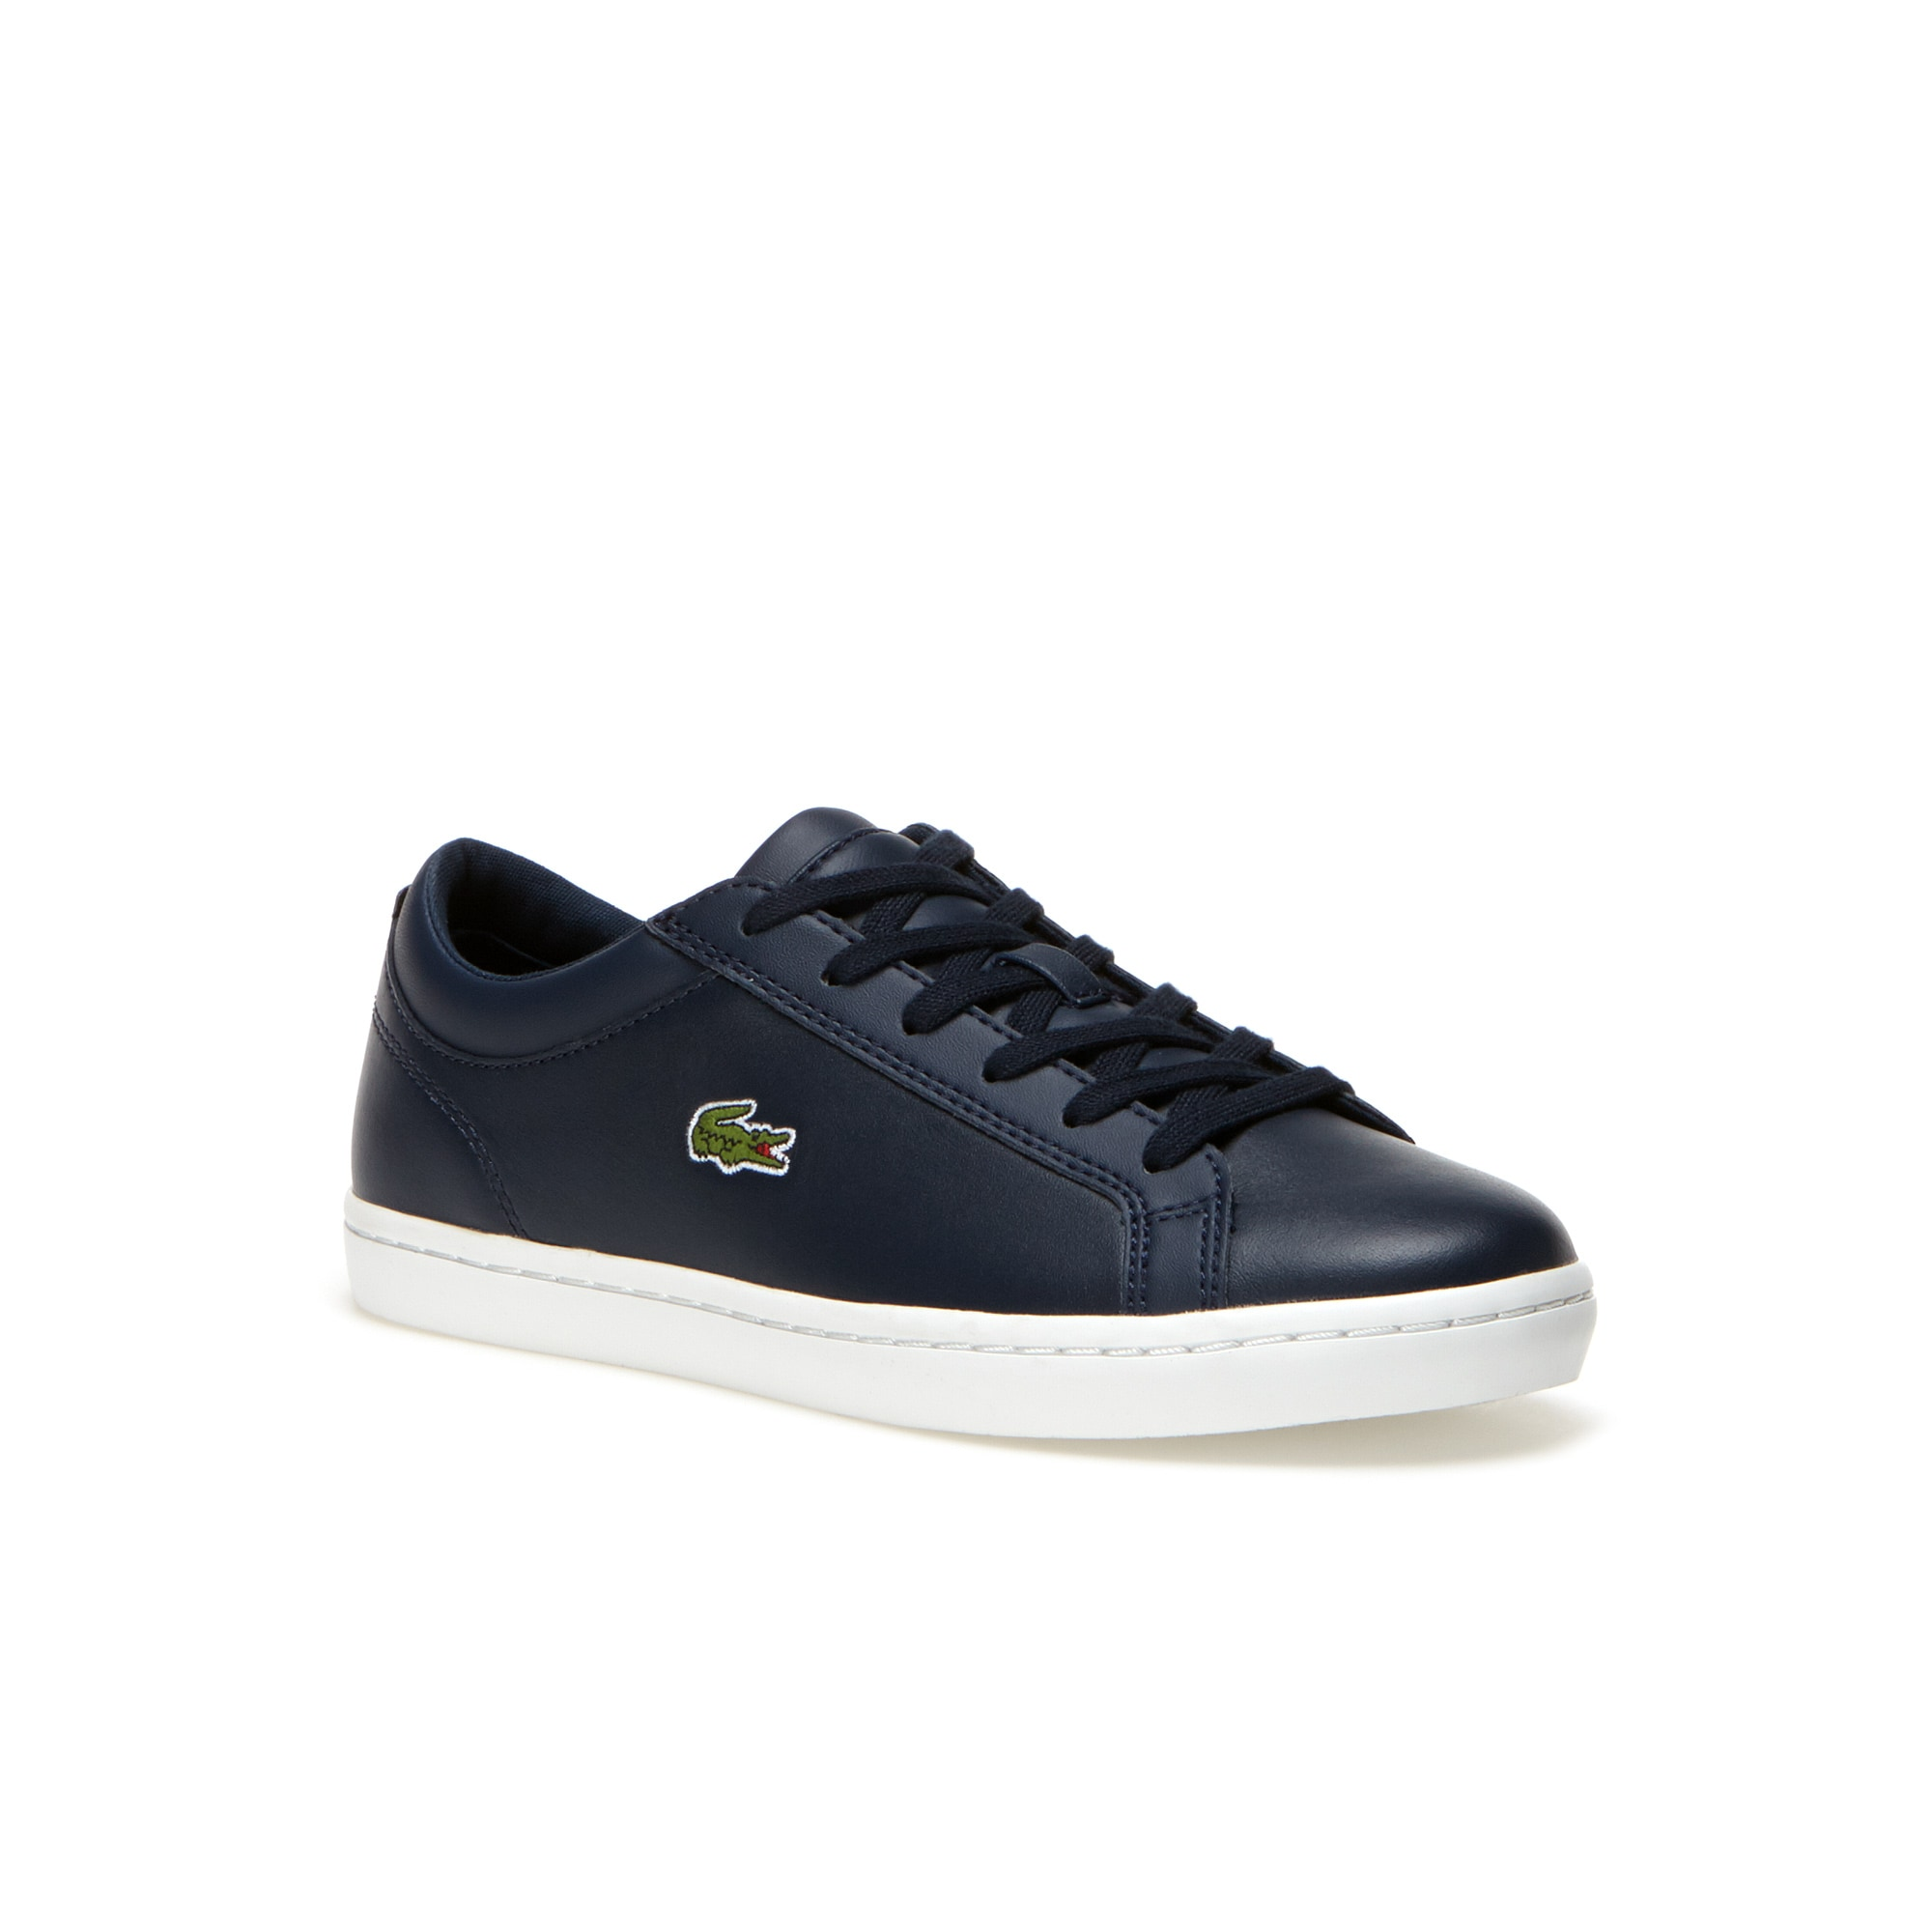 Women's Straightset Leather Sneakers